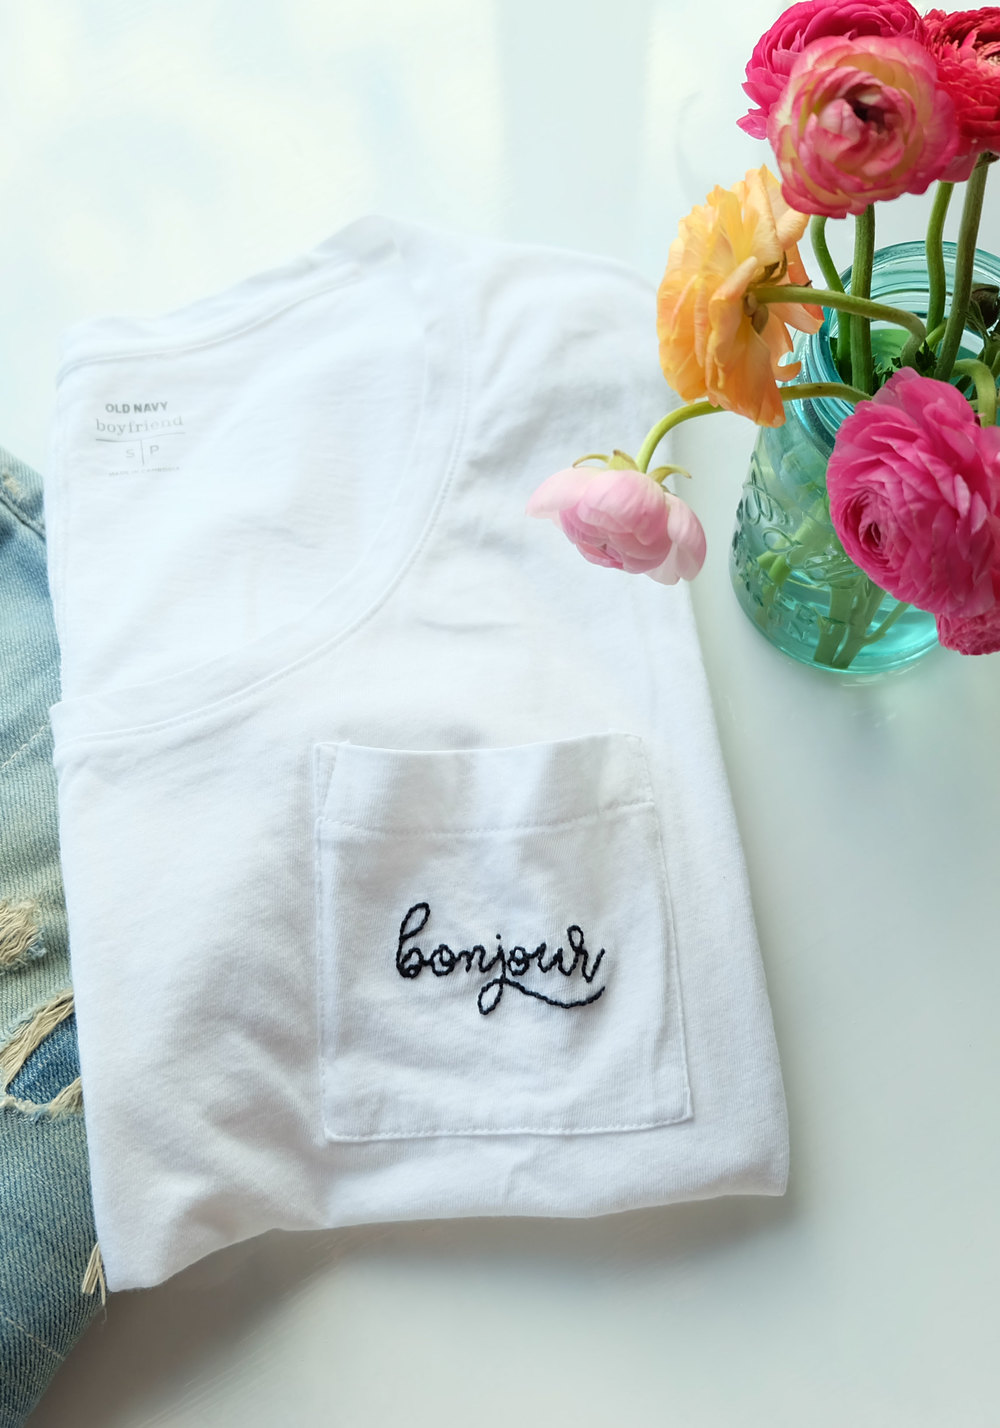 Old Navy Boyfriend Pocket Tee with DIY Embroidered Graphic, Fun Fashion DIY! Casual Weekend Outfit.